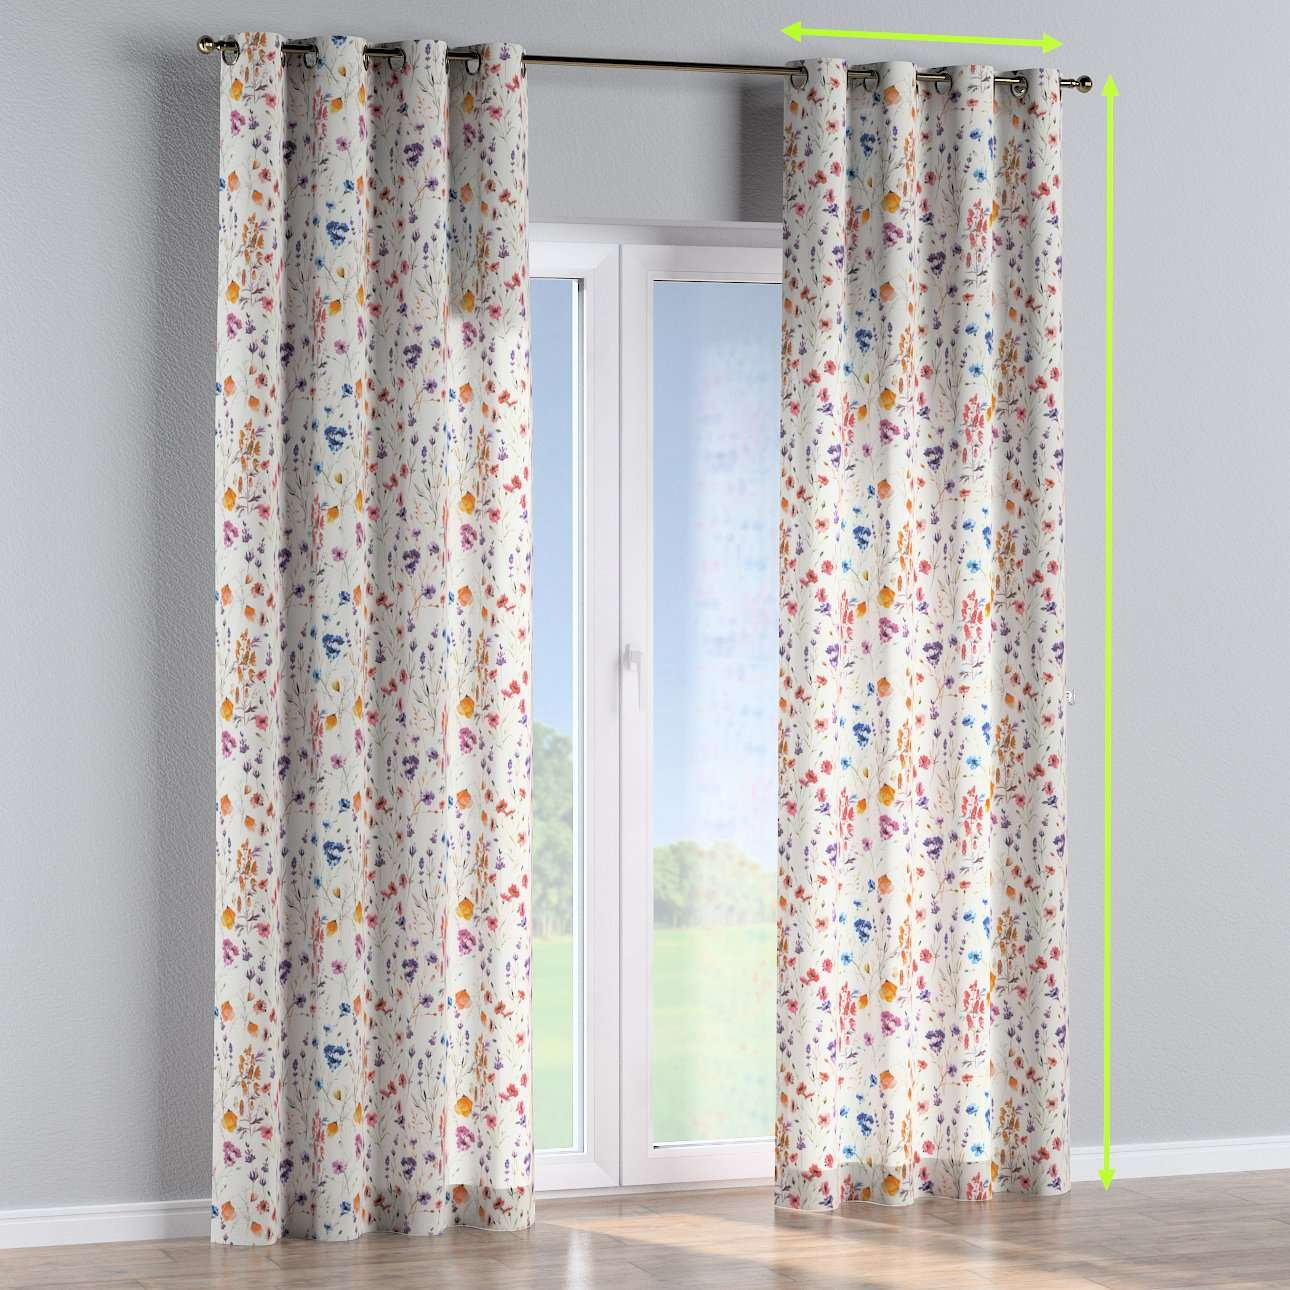 Eyelet curtains in collection Flowers, fabric: 141-53